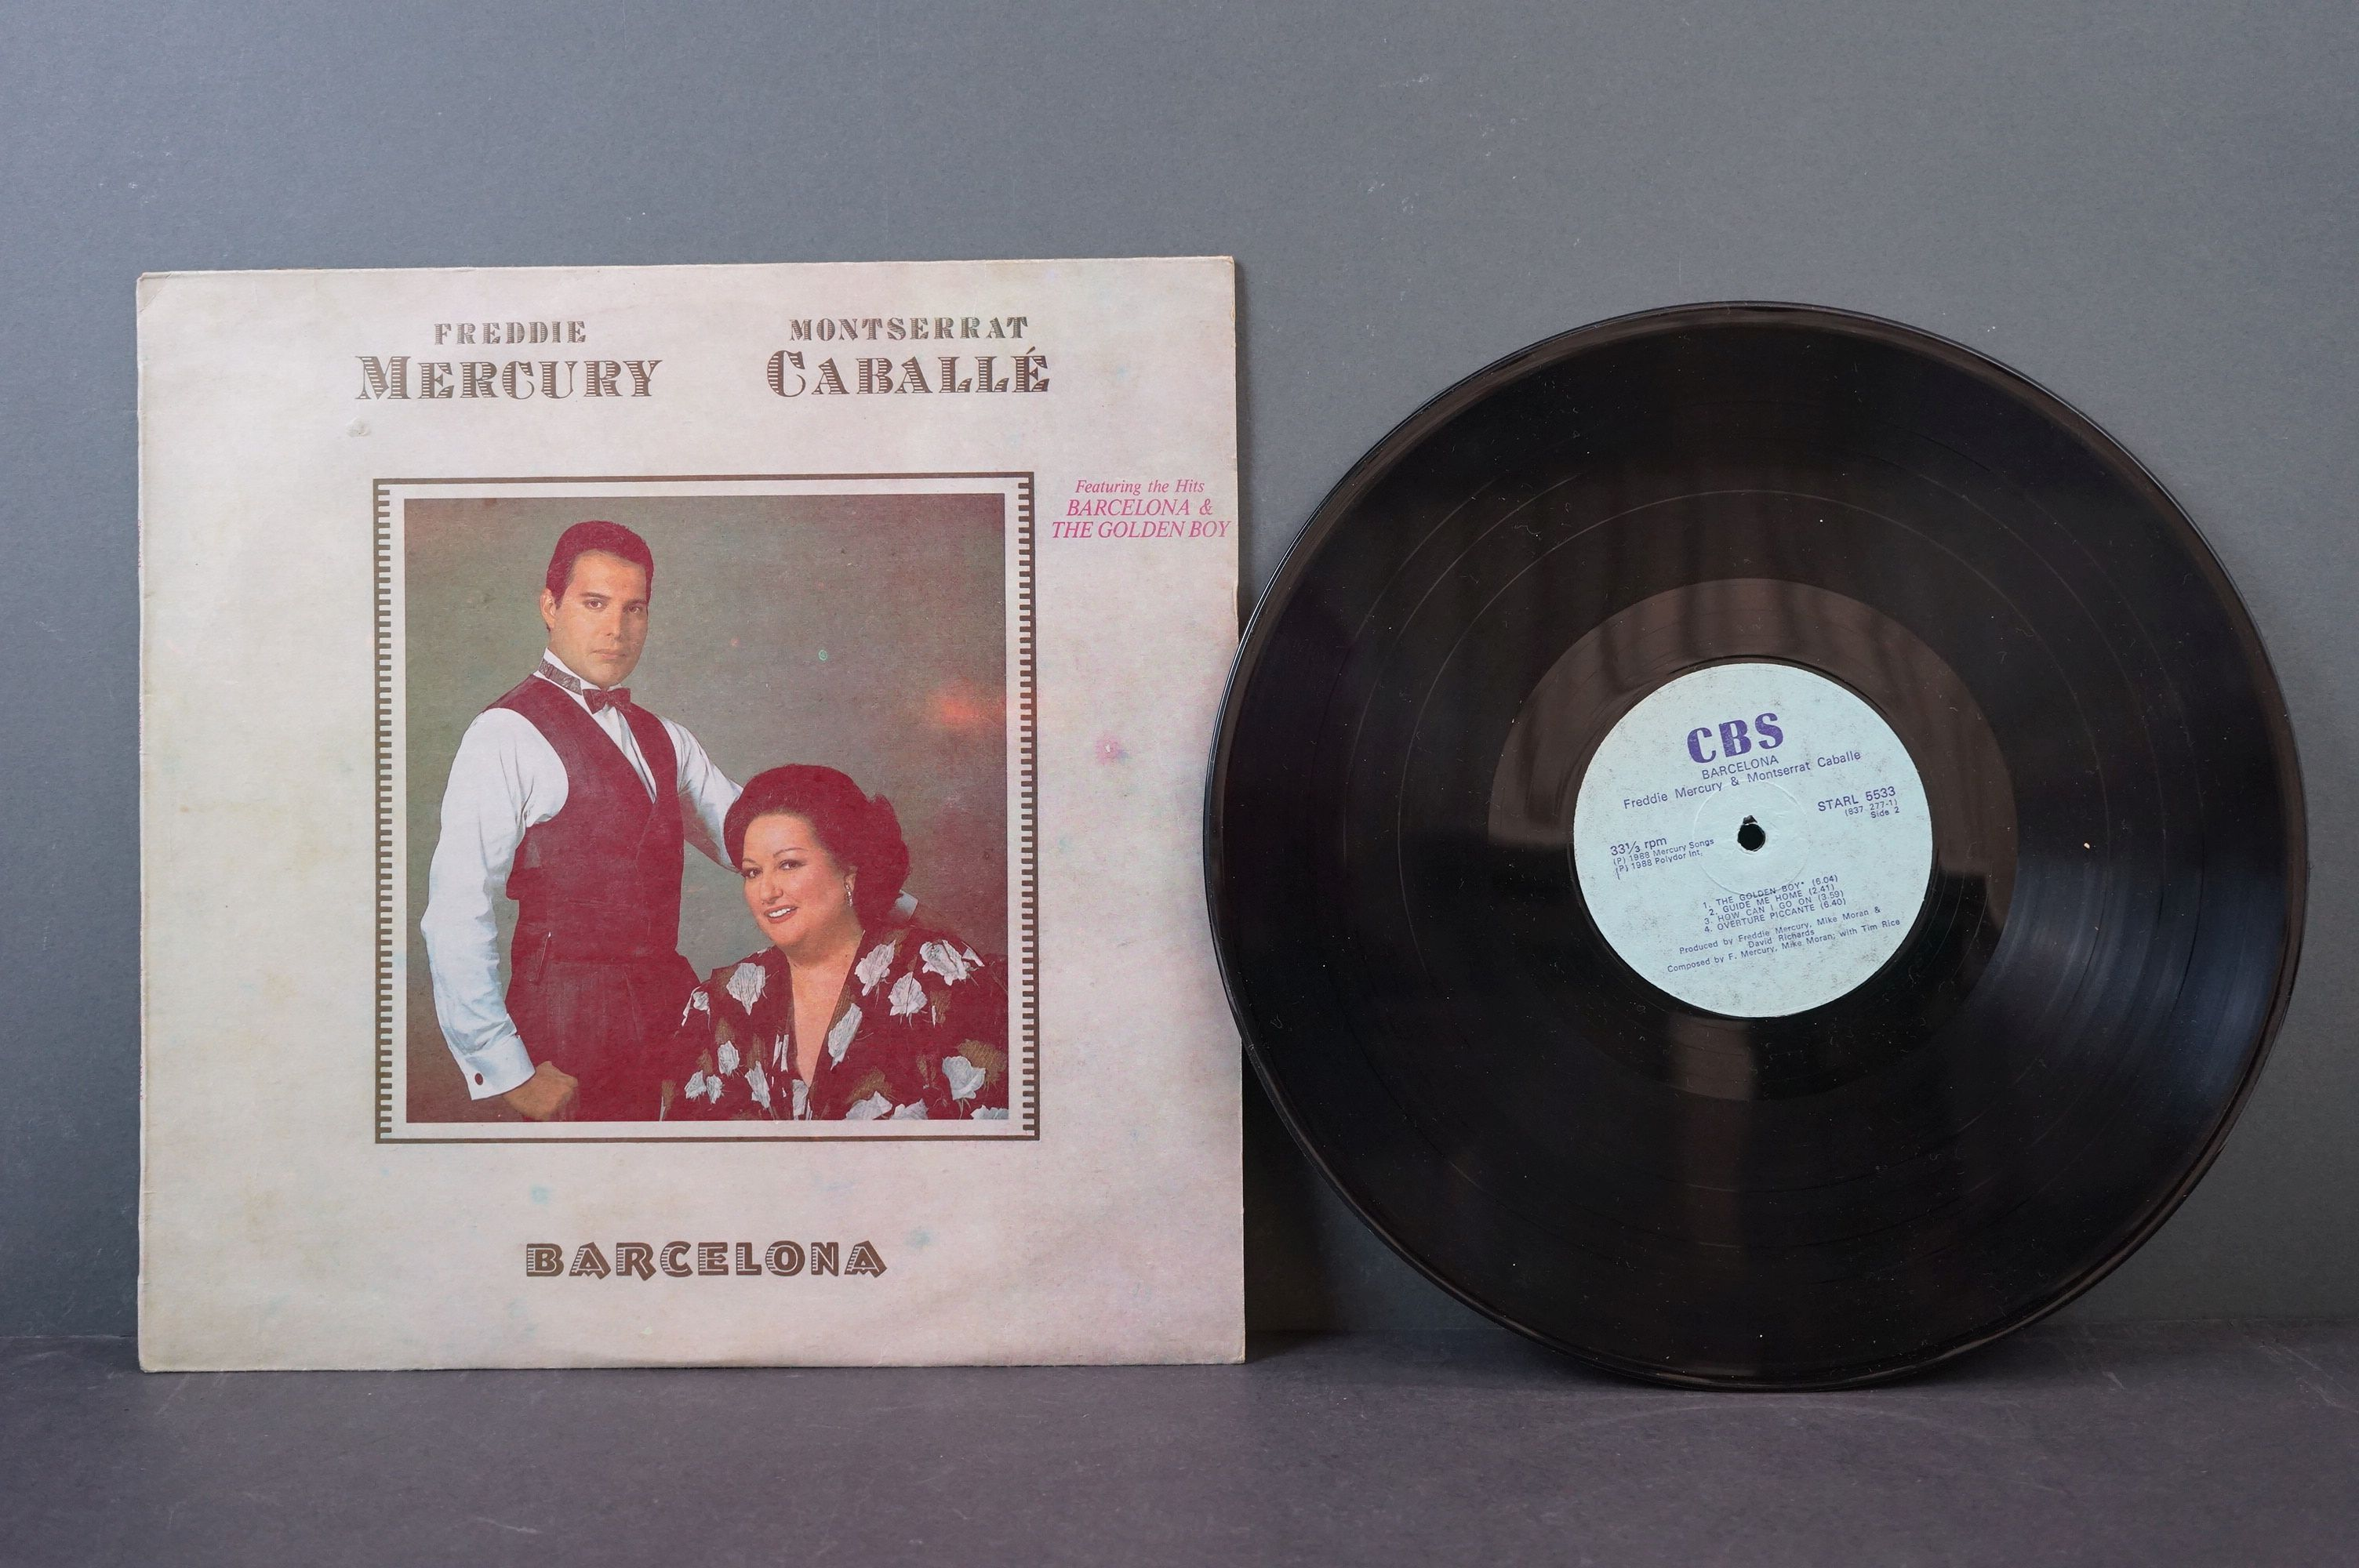 Vinyl - Psych / Rock / Garage - Four scarce African Pressing original albums to include Nazz - - Image 8 of 9